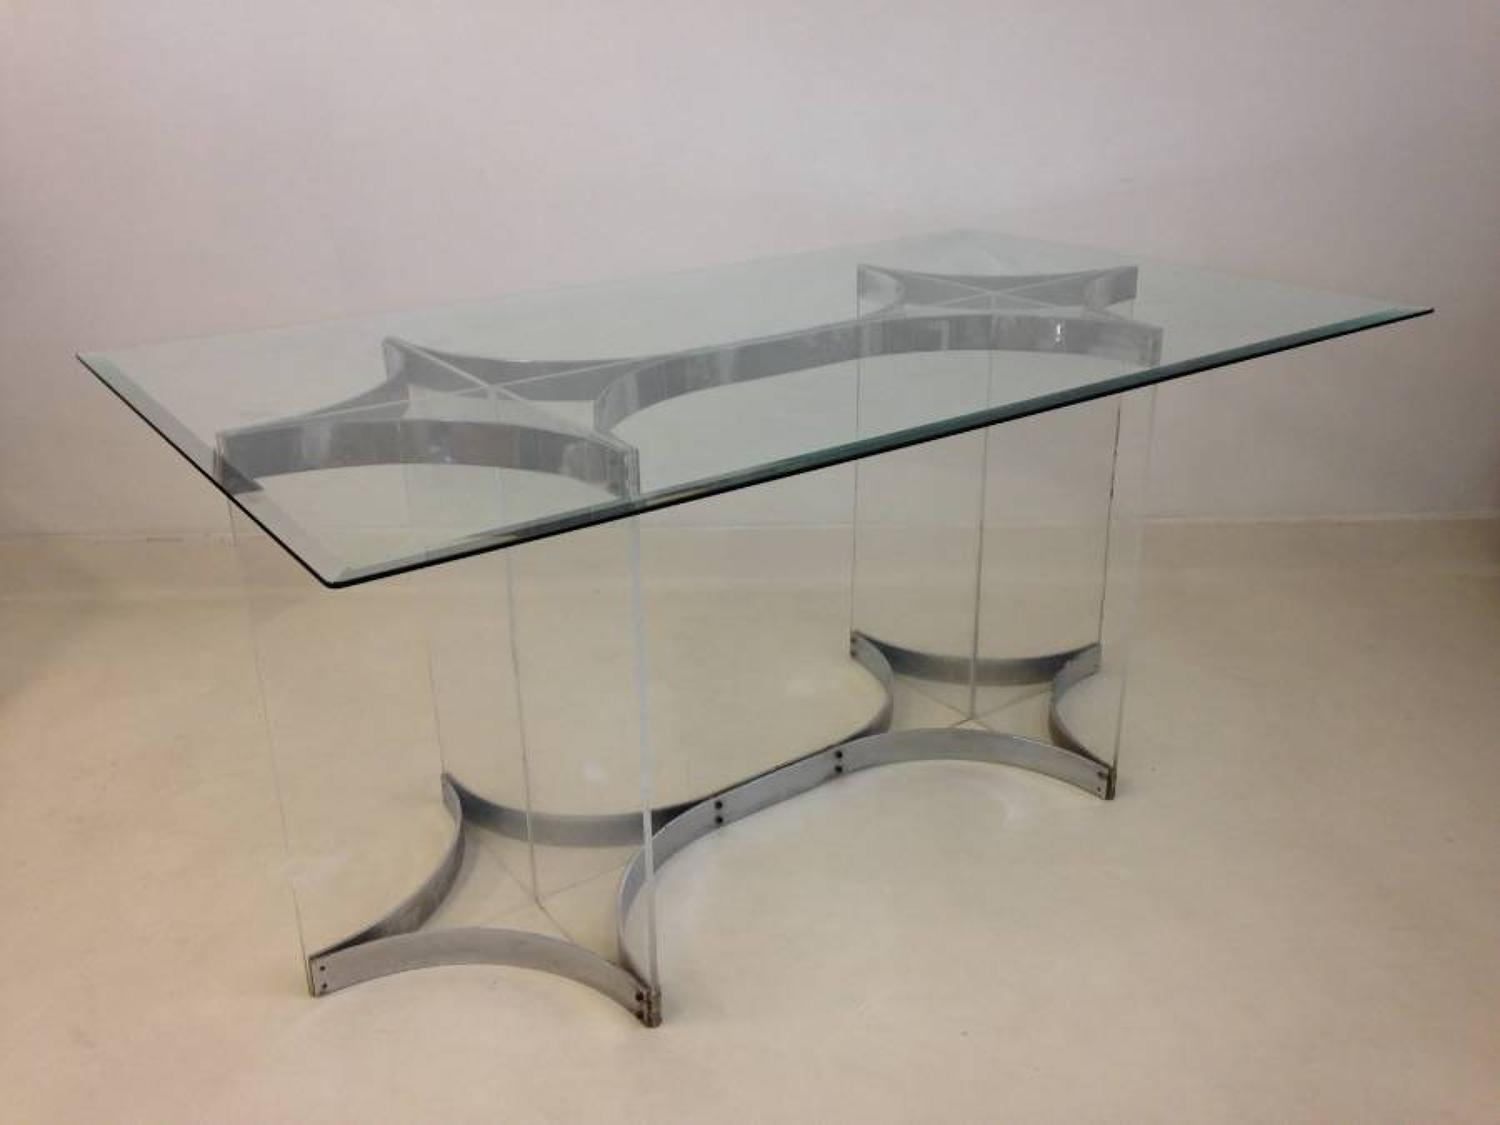 Chrome and lucite desk or table by Alessandro Albrizzi